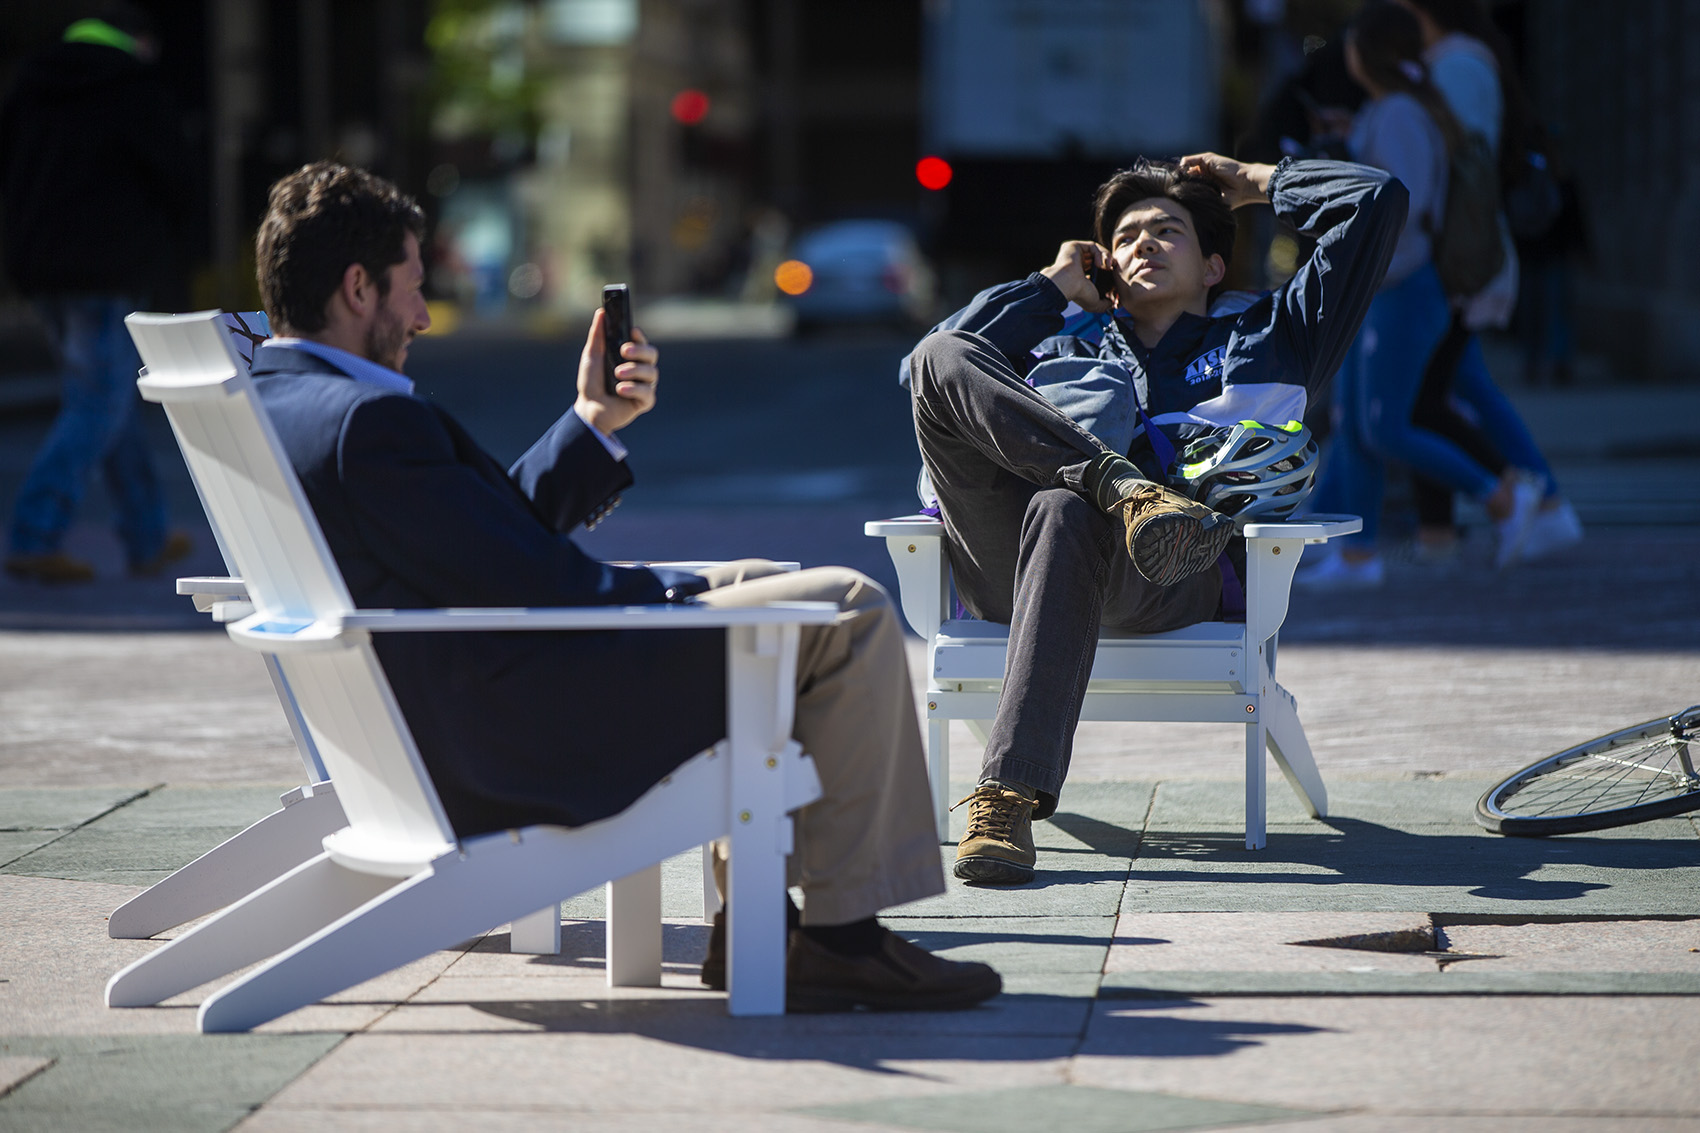 Marc Chan, right, calls his father while sitting on one of the Artists For Humanity-painted Adirondack chairs in Copley Square. (Jesse Costa/WBUR)